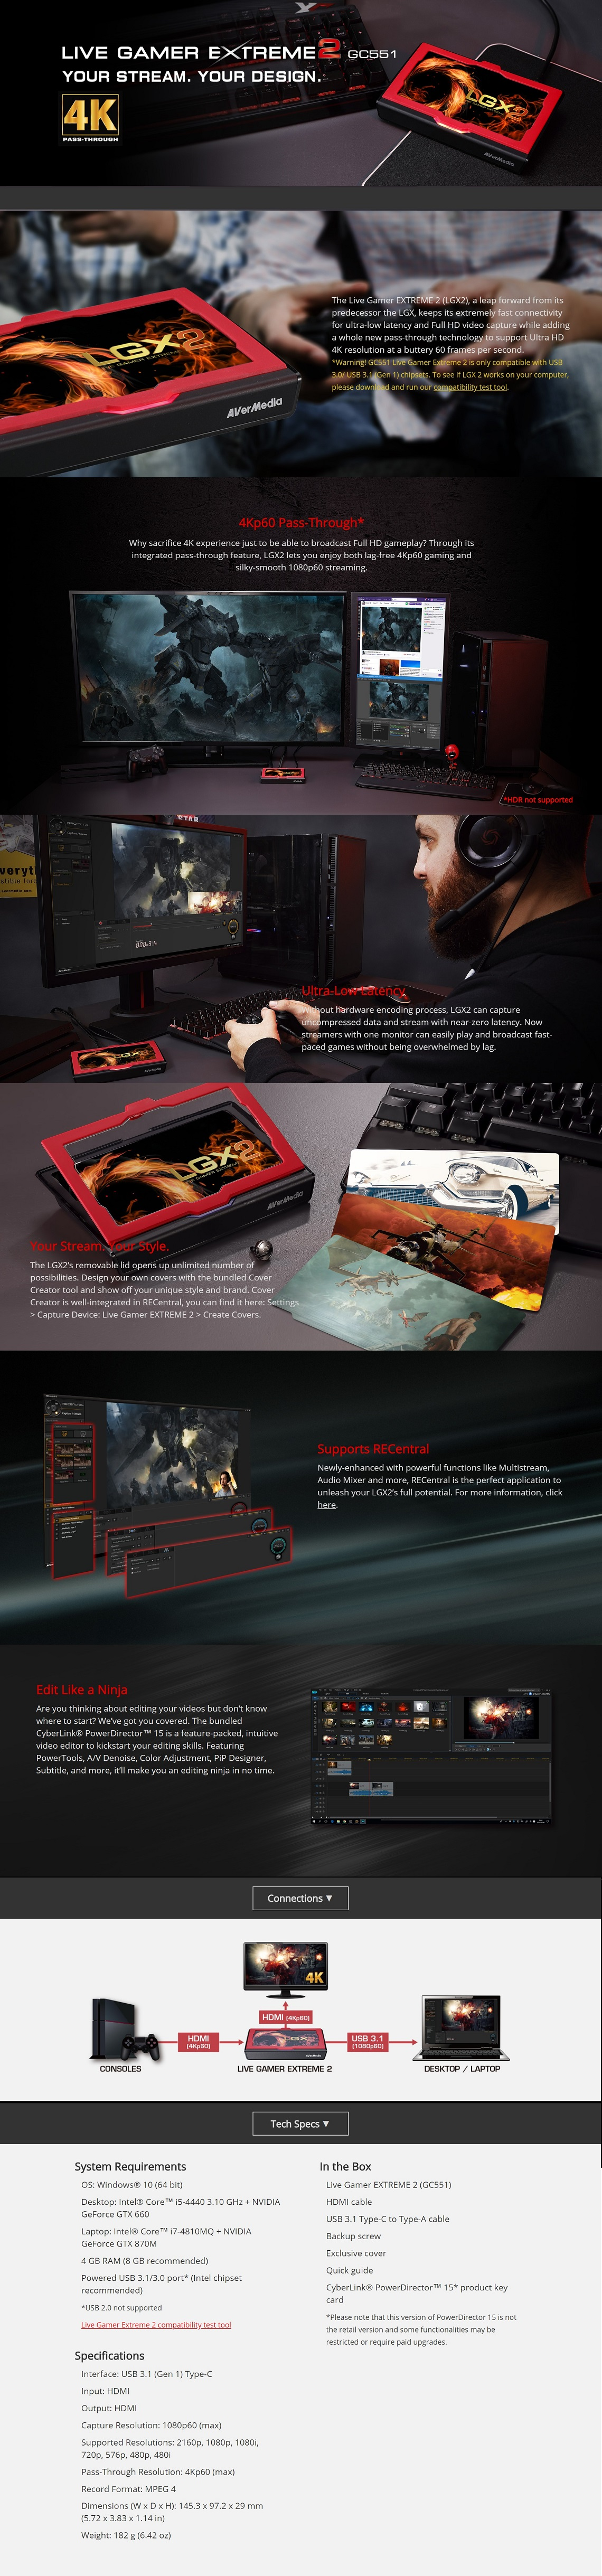 Details about AVerMedia GC551 Live Gamer Extreme 2 USB3 1 4K 1080P 60FPS  Video Capture LGX2